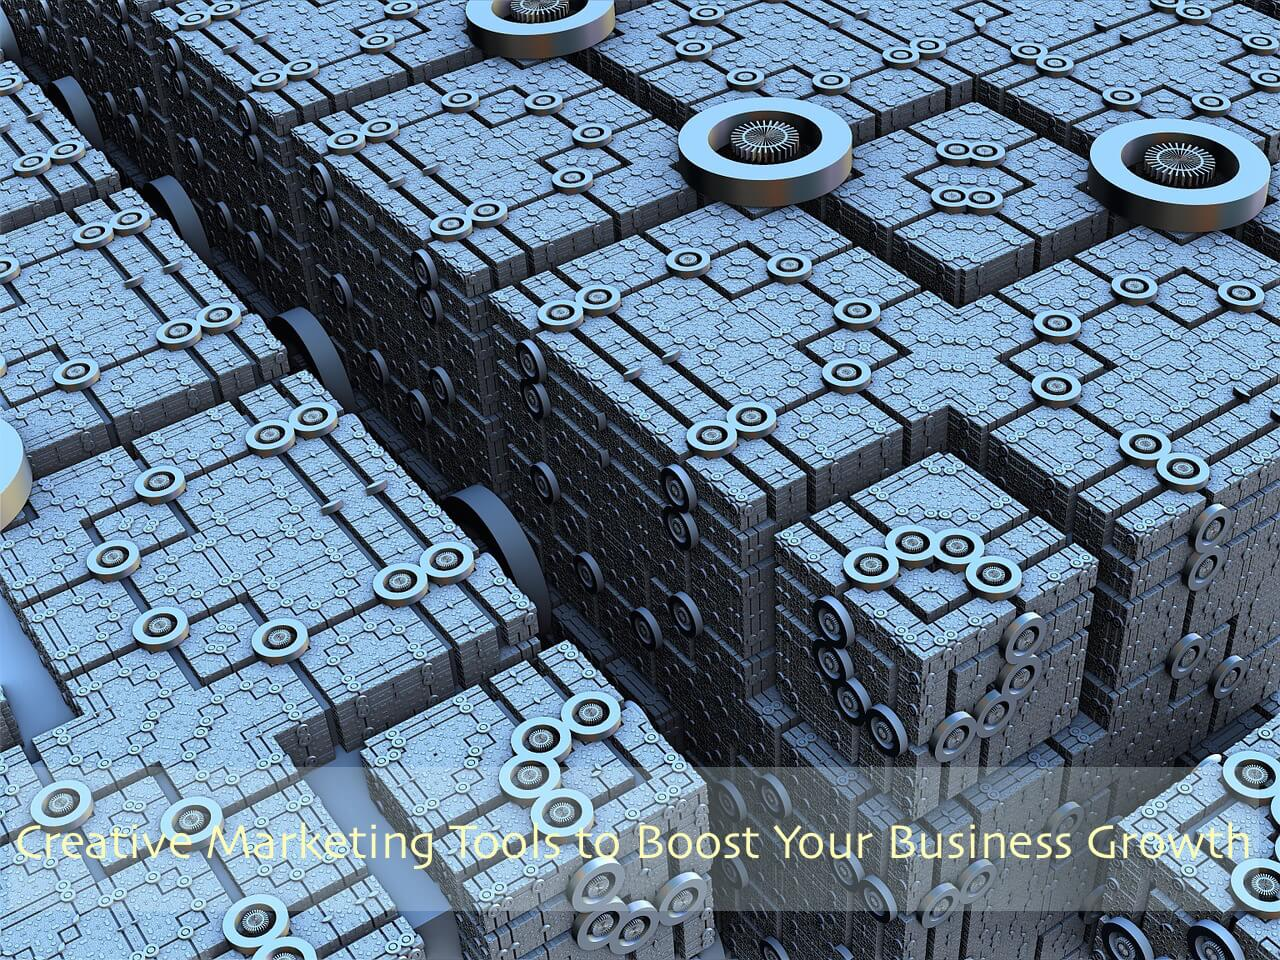 Creative Marketing Tools to Boost Your Business Growth